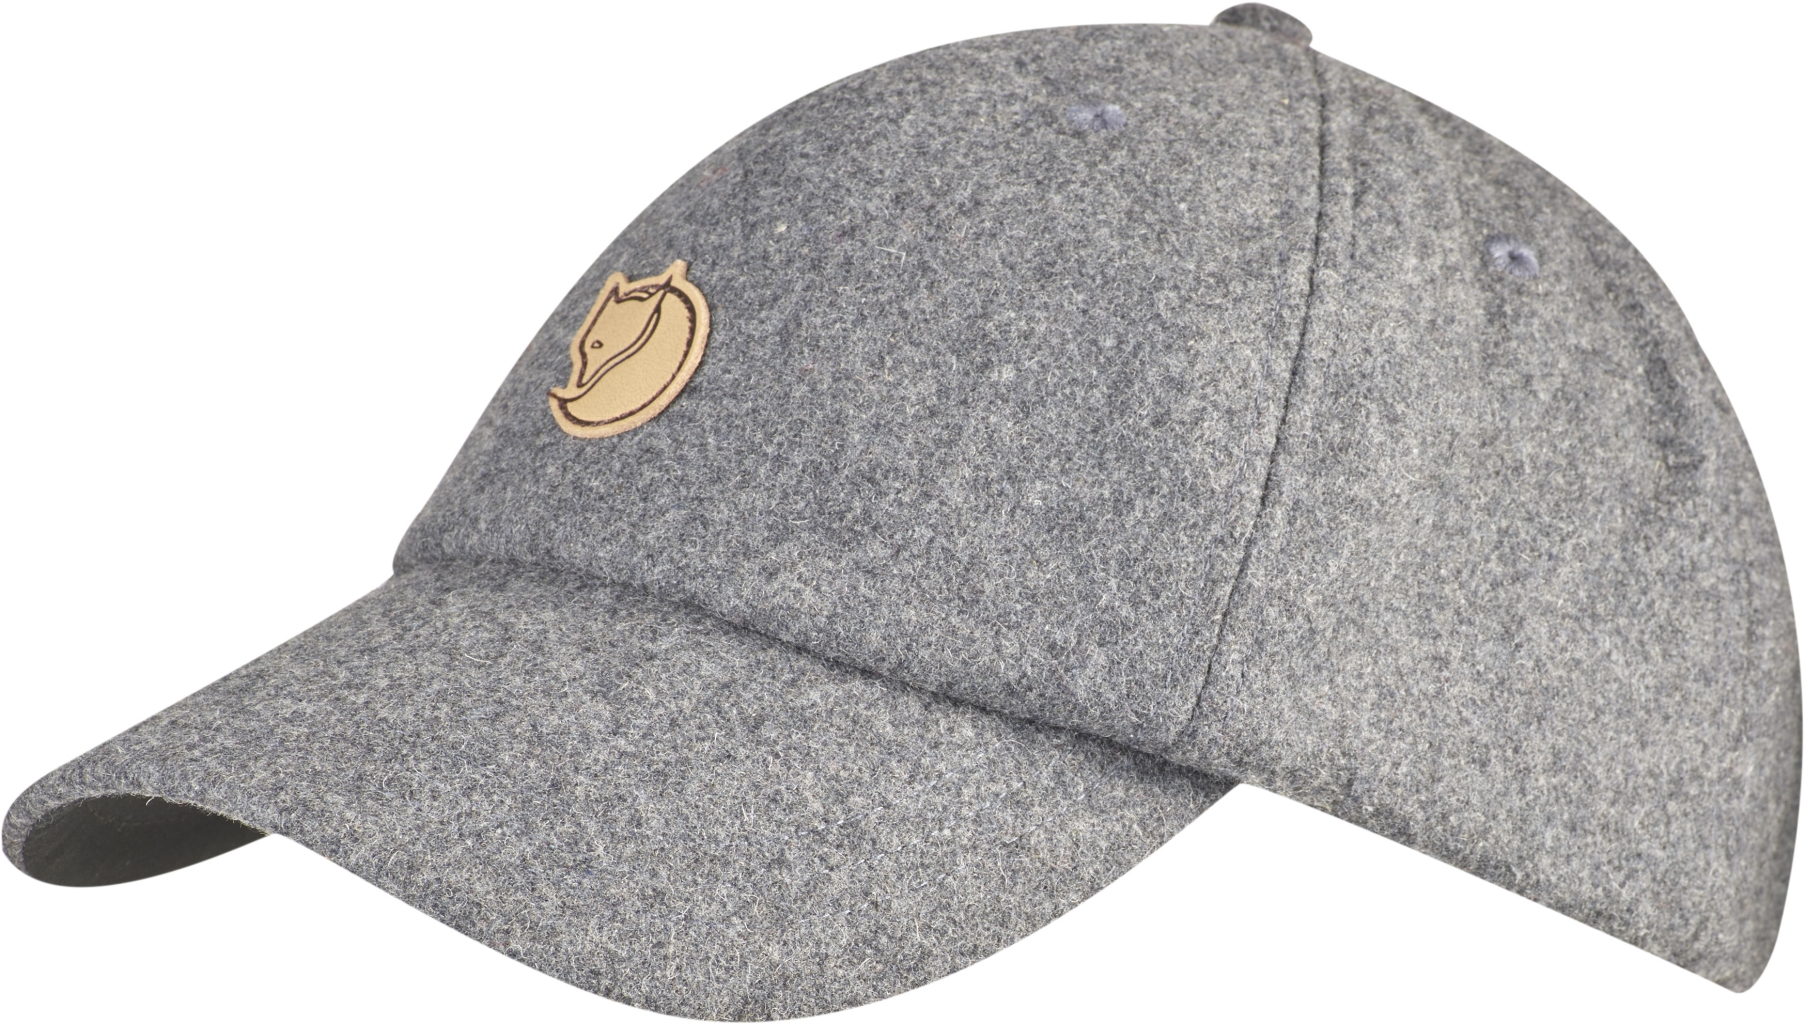 FjallRaven Ovik Wool Cap Dark Grey-30